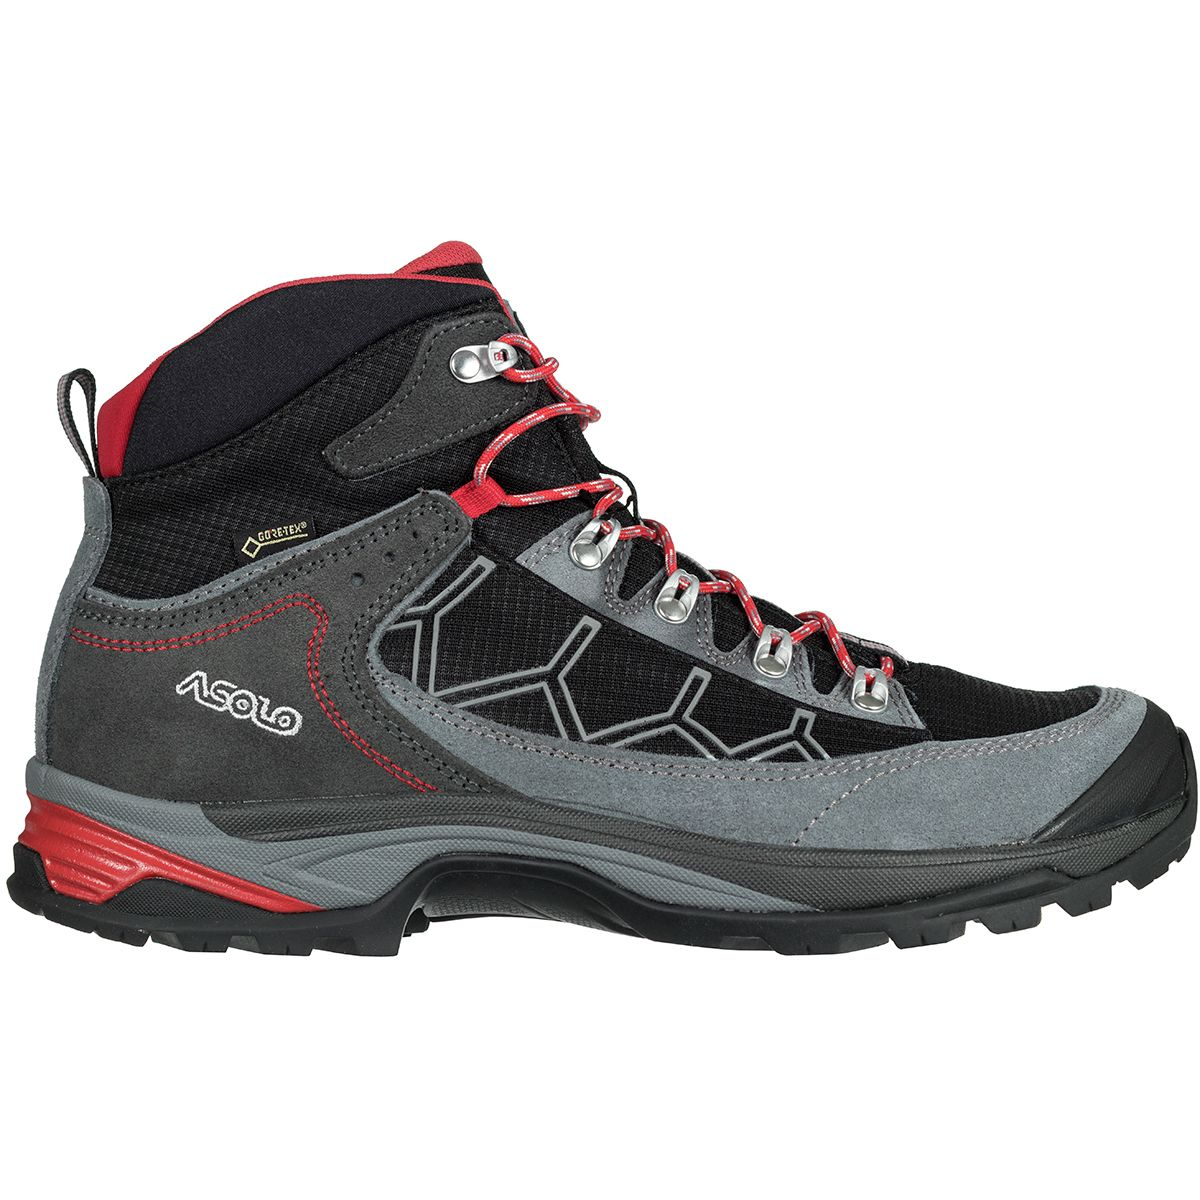 amazing price new images of low priced Asolo Falcon GV Hiking Boot - Men's | Backcountry.com